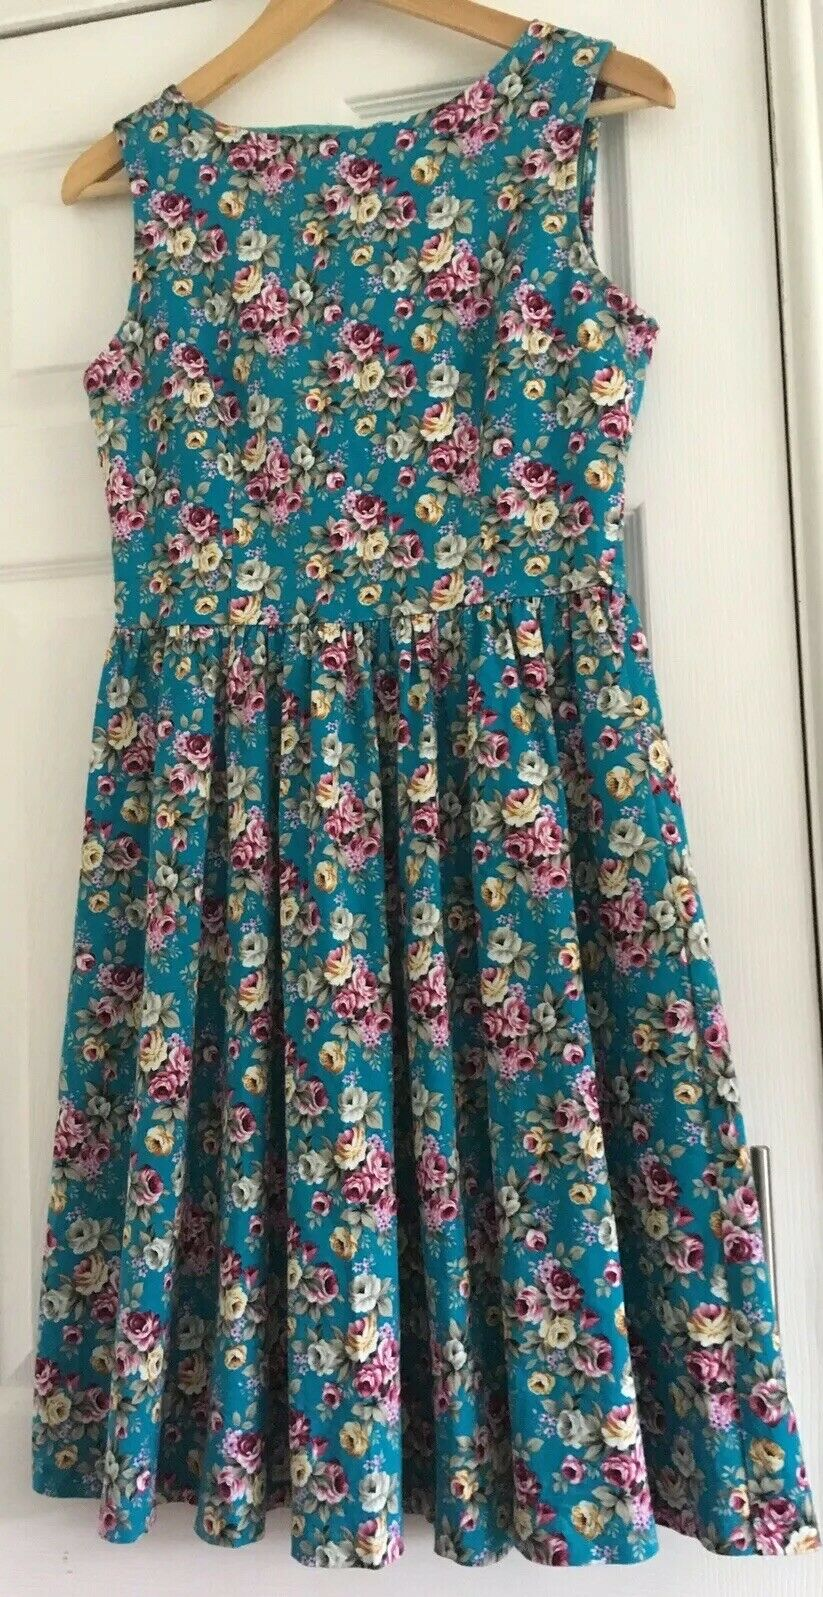 LINDY BOP Audrey 50's Swing Stretchy Turquoise Floral Dress Size UK12 Beautiful